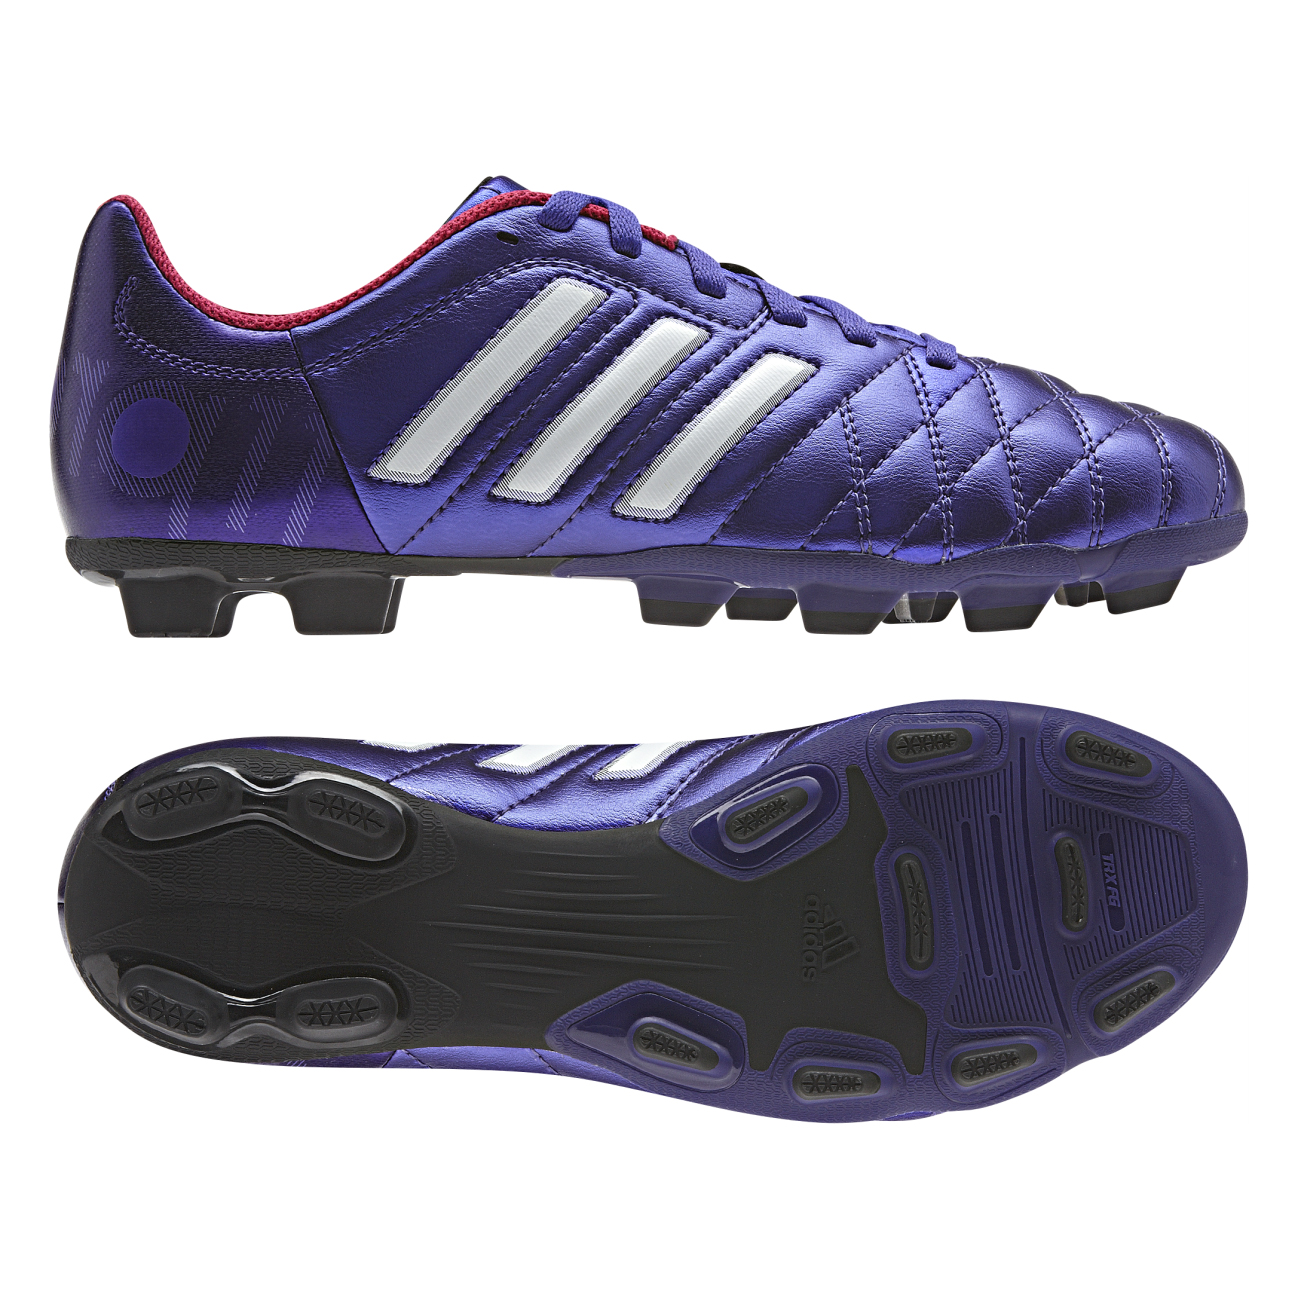 Adidas 11Questra TRX Firm Ground Football Boots - Kids Purple